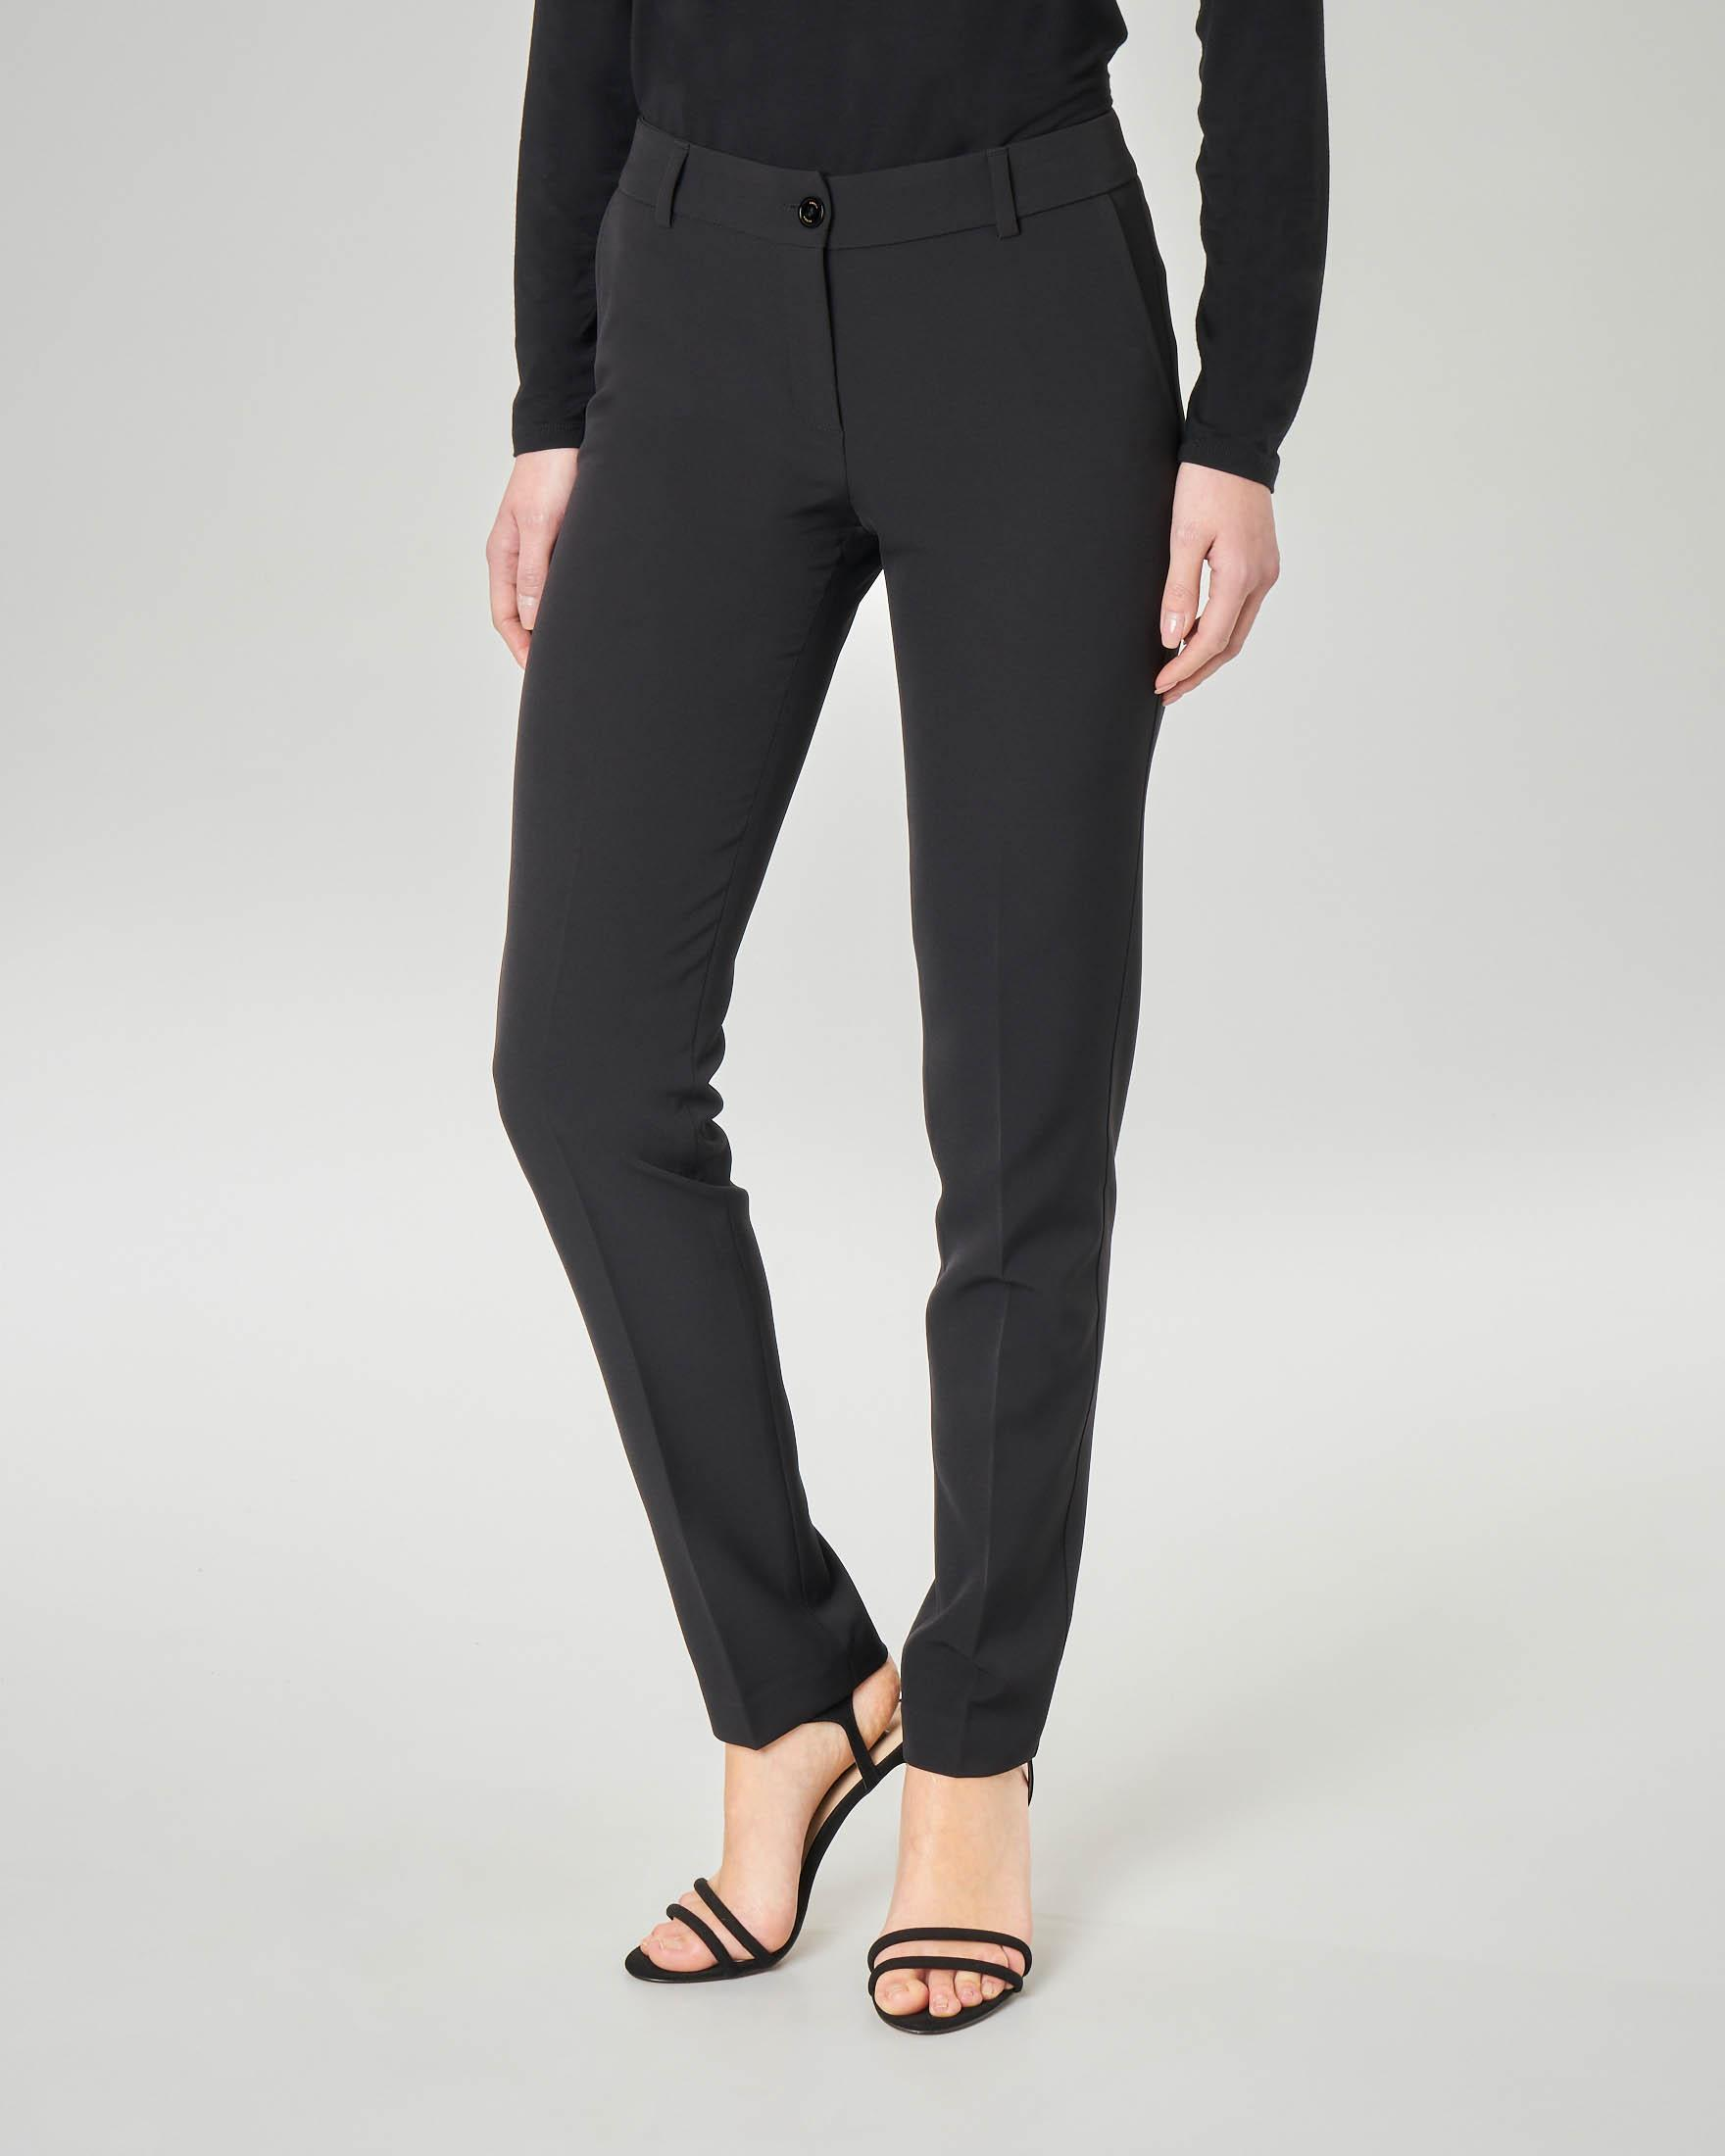 Pantalone nero in cady lunghezza regular